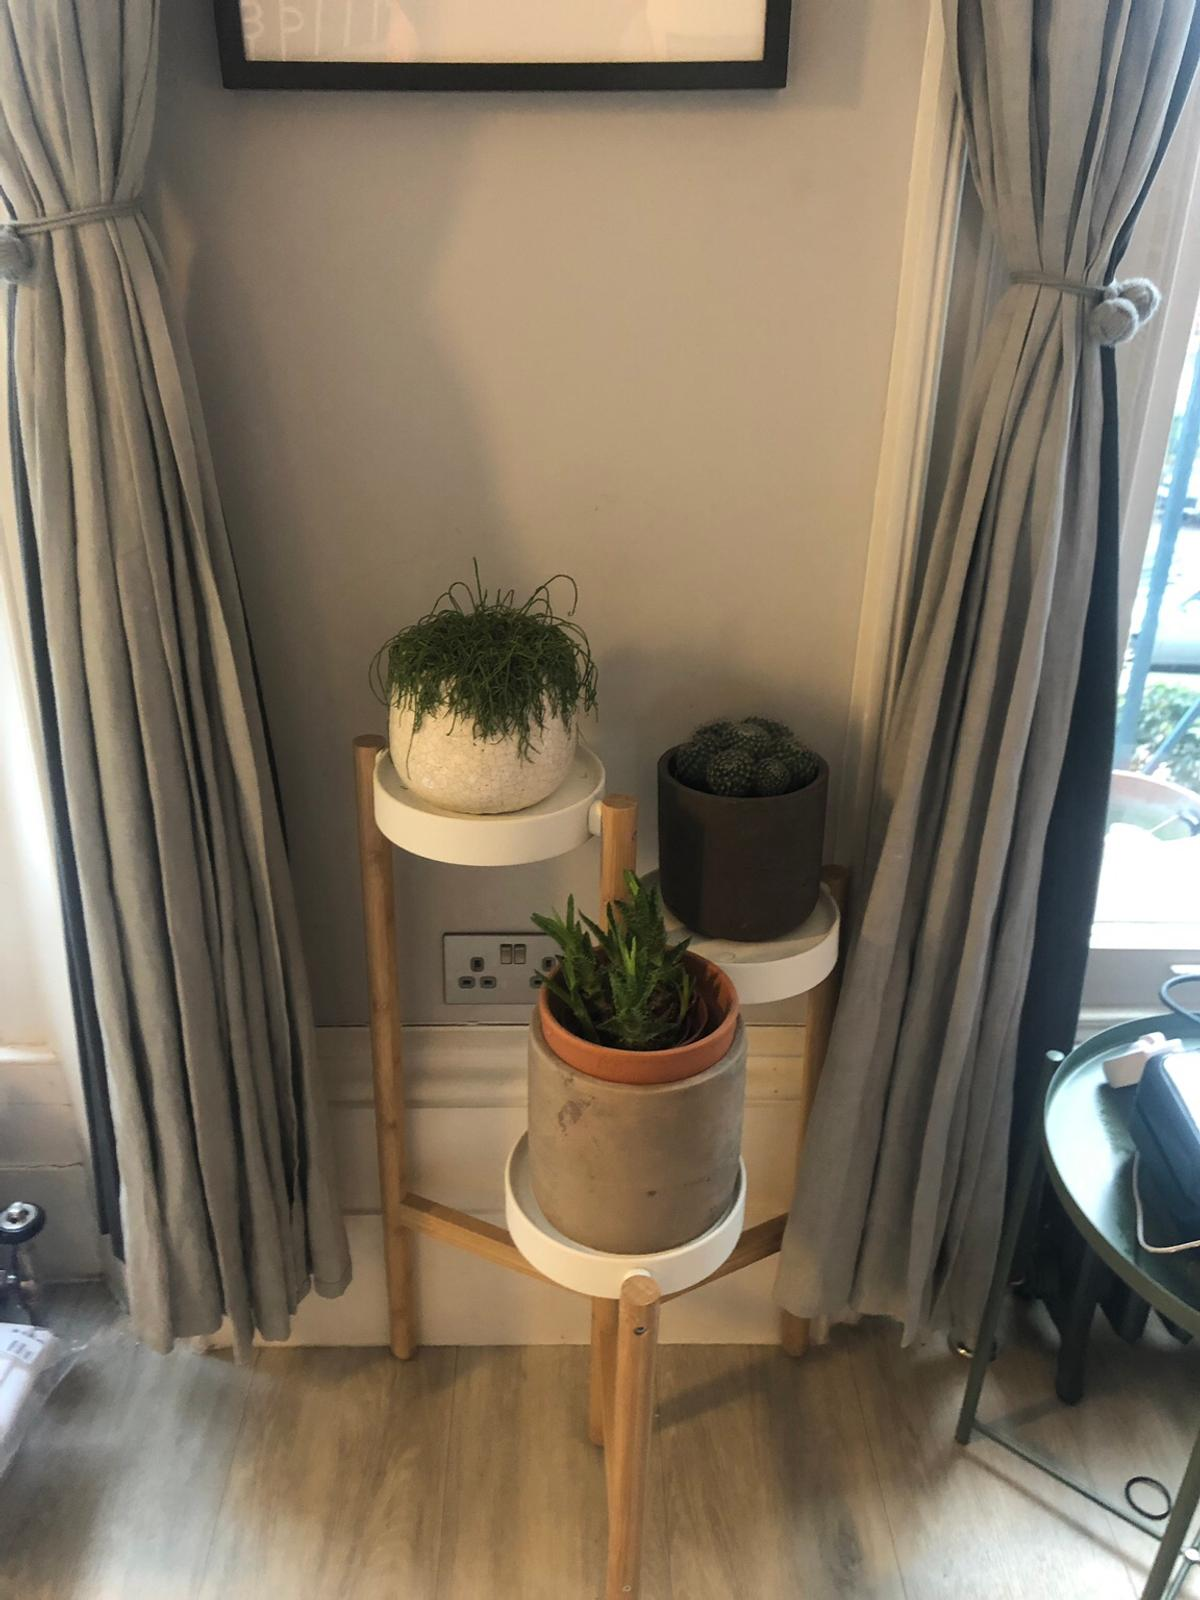 Ikea Satsumas Plant Stand In Se5 London For 12 00 For Sale Shpock